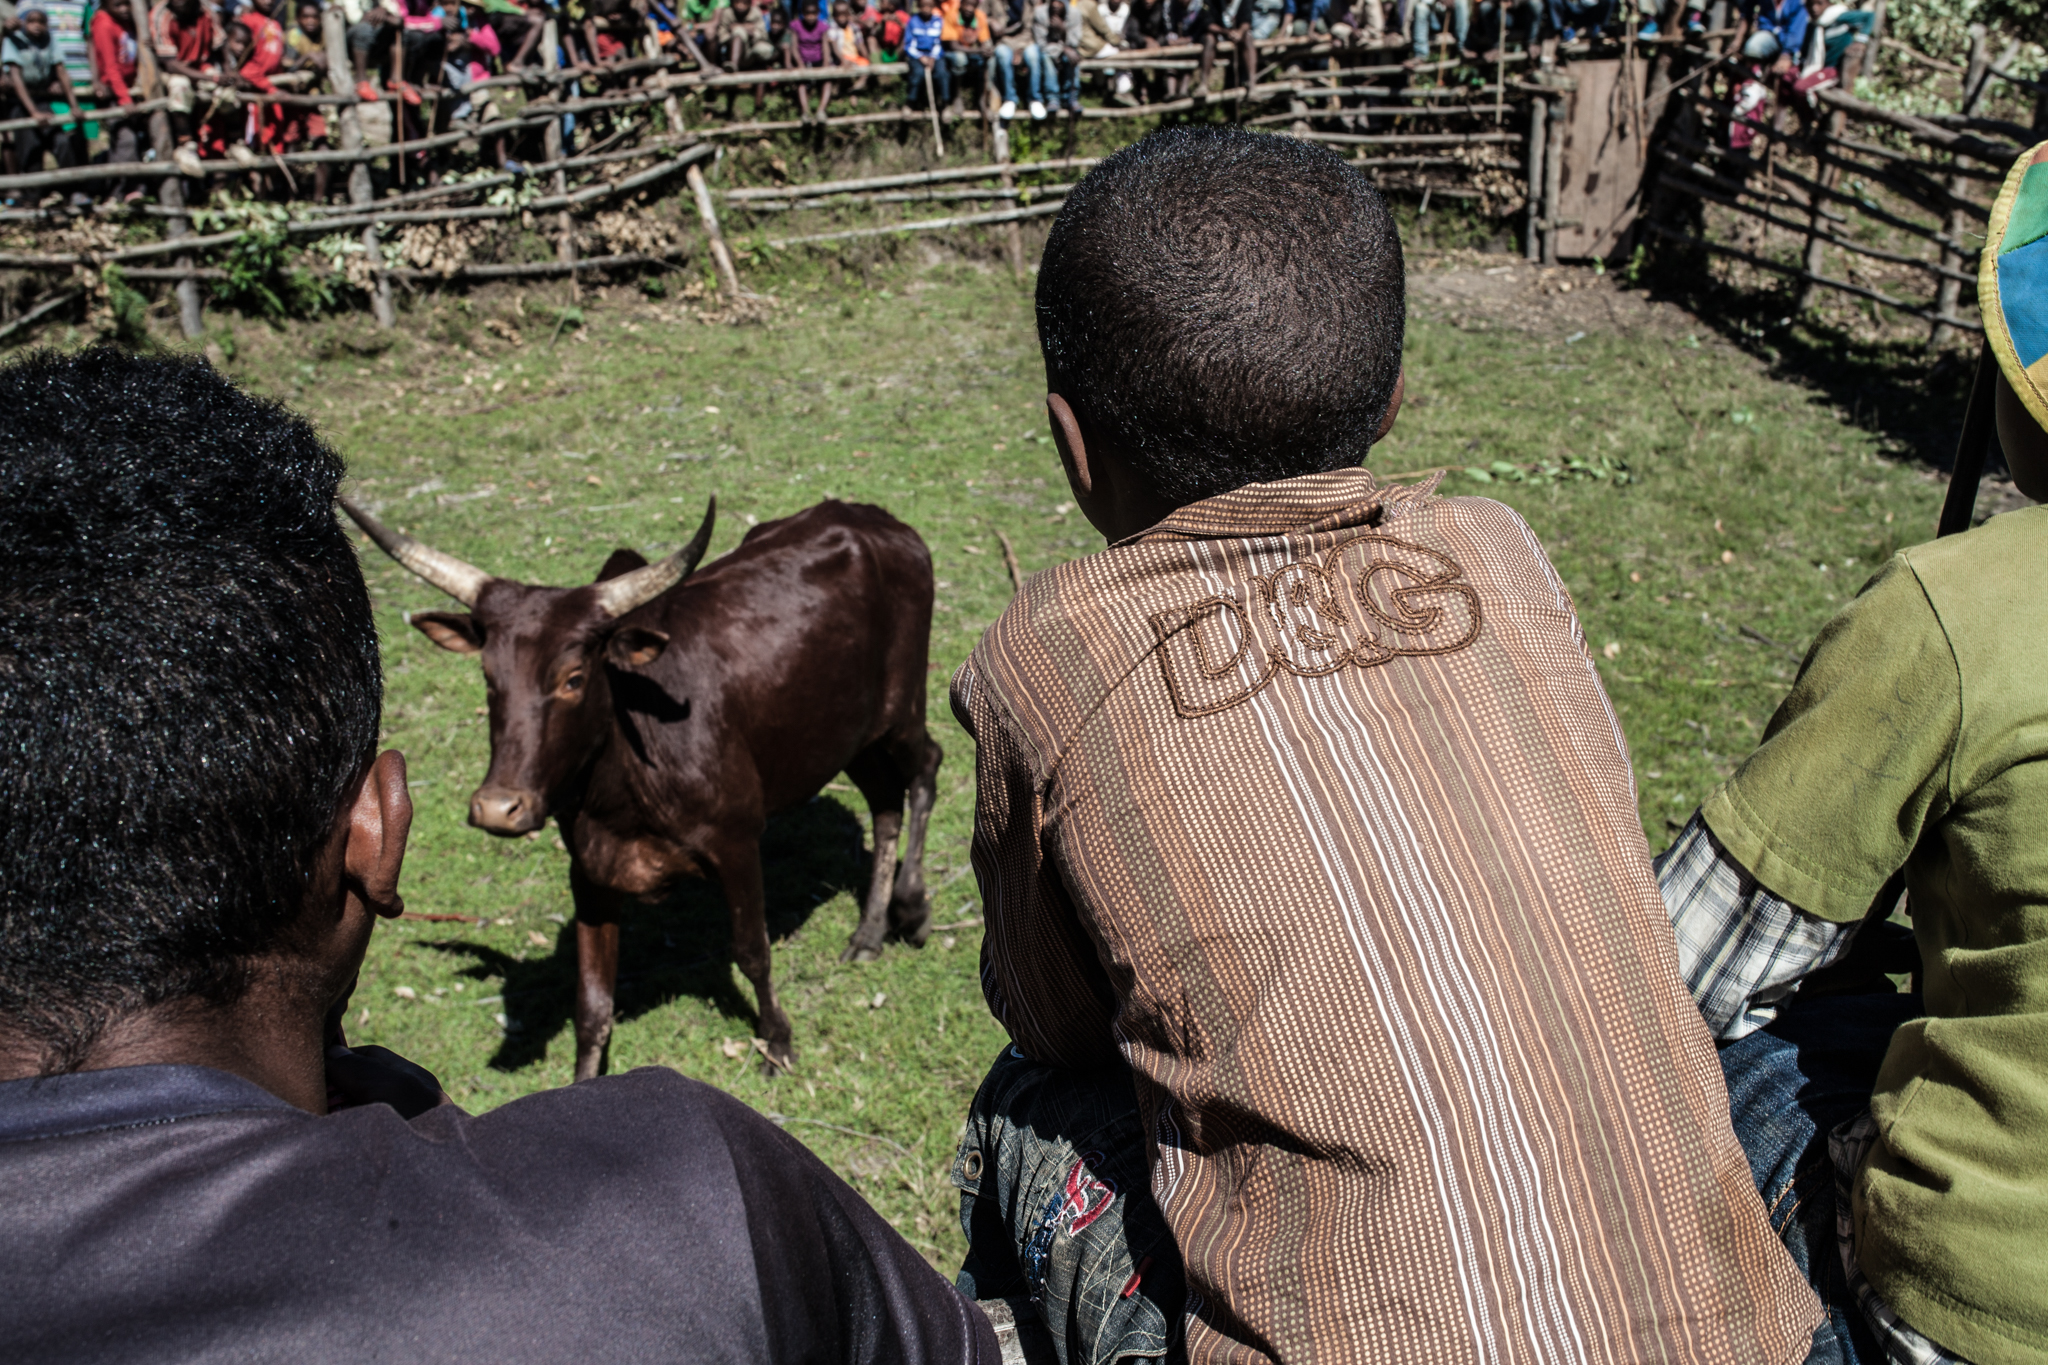 Champion zebu are released into the ring with an open challenge to anyone daring enough